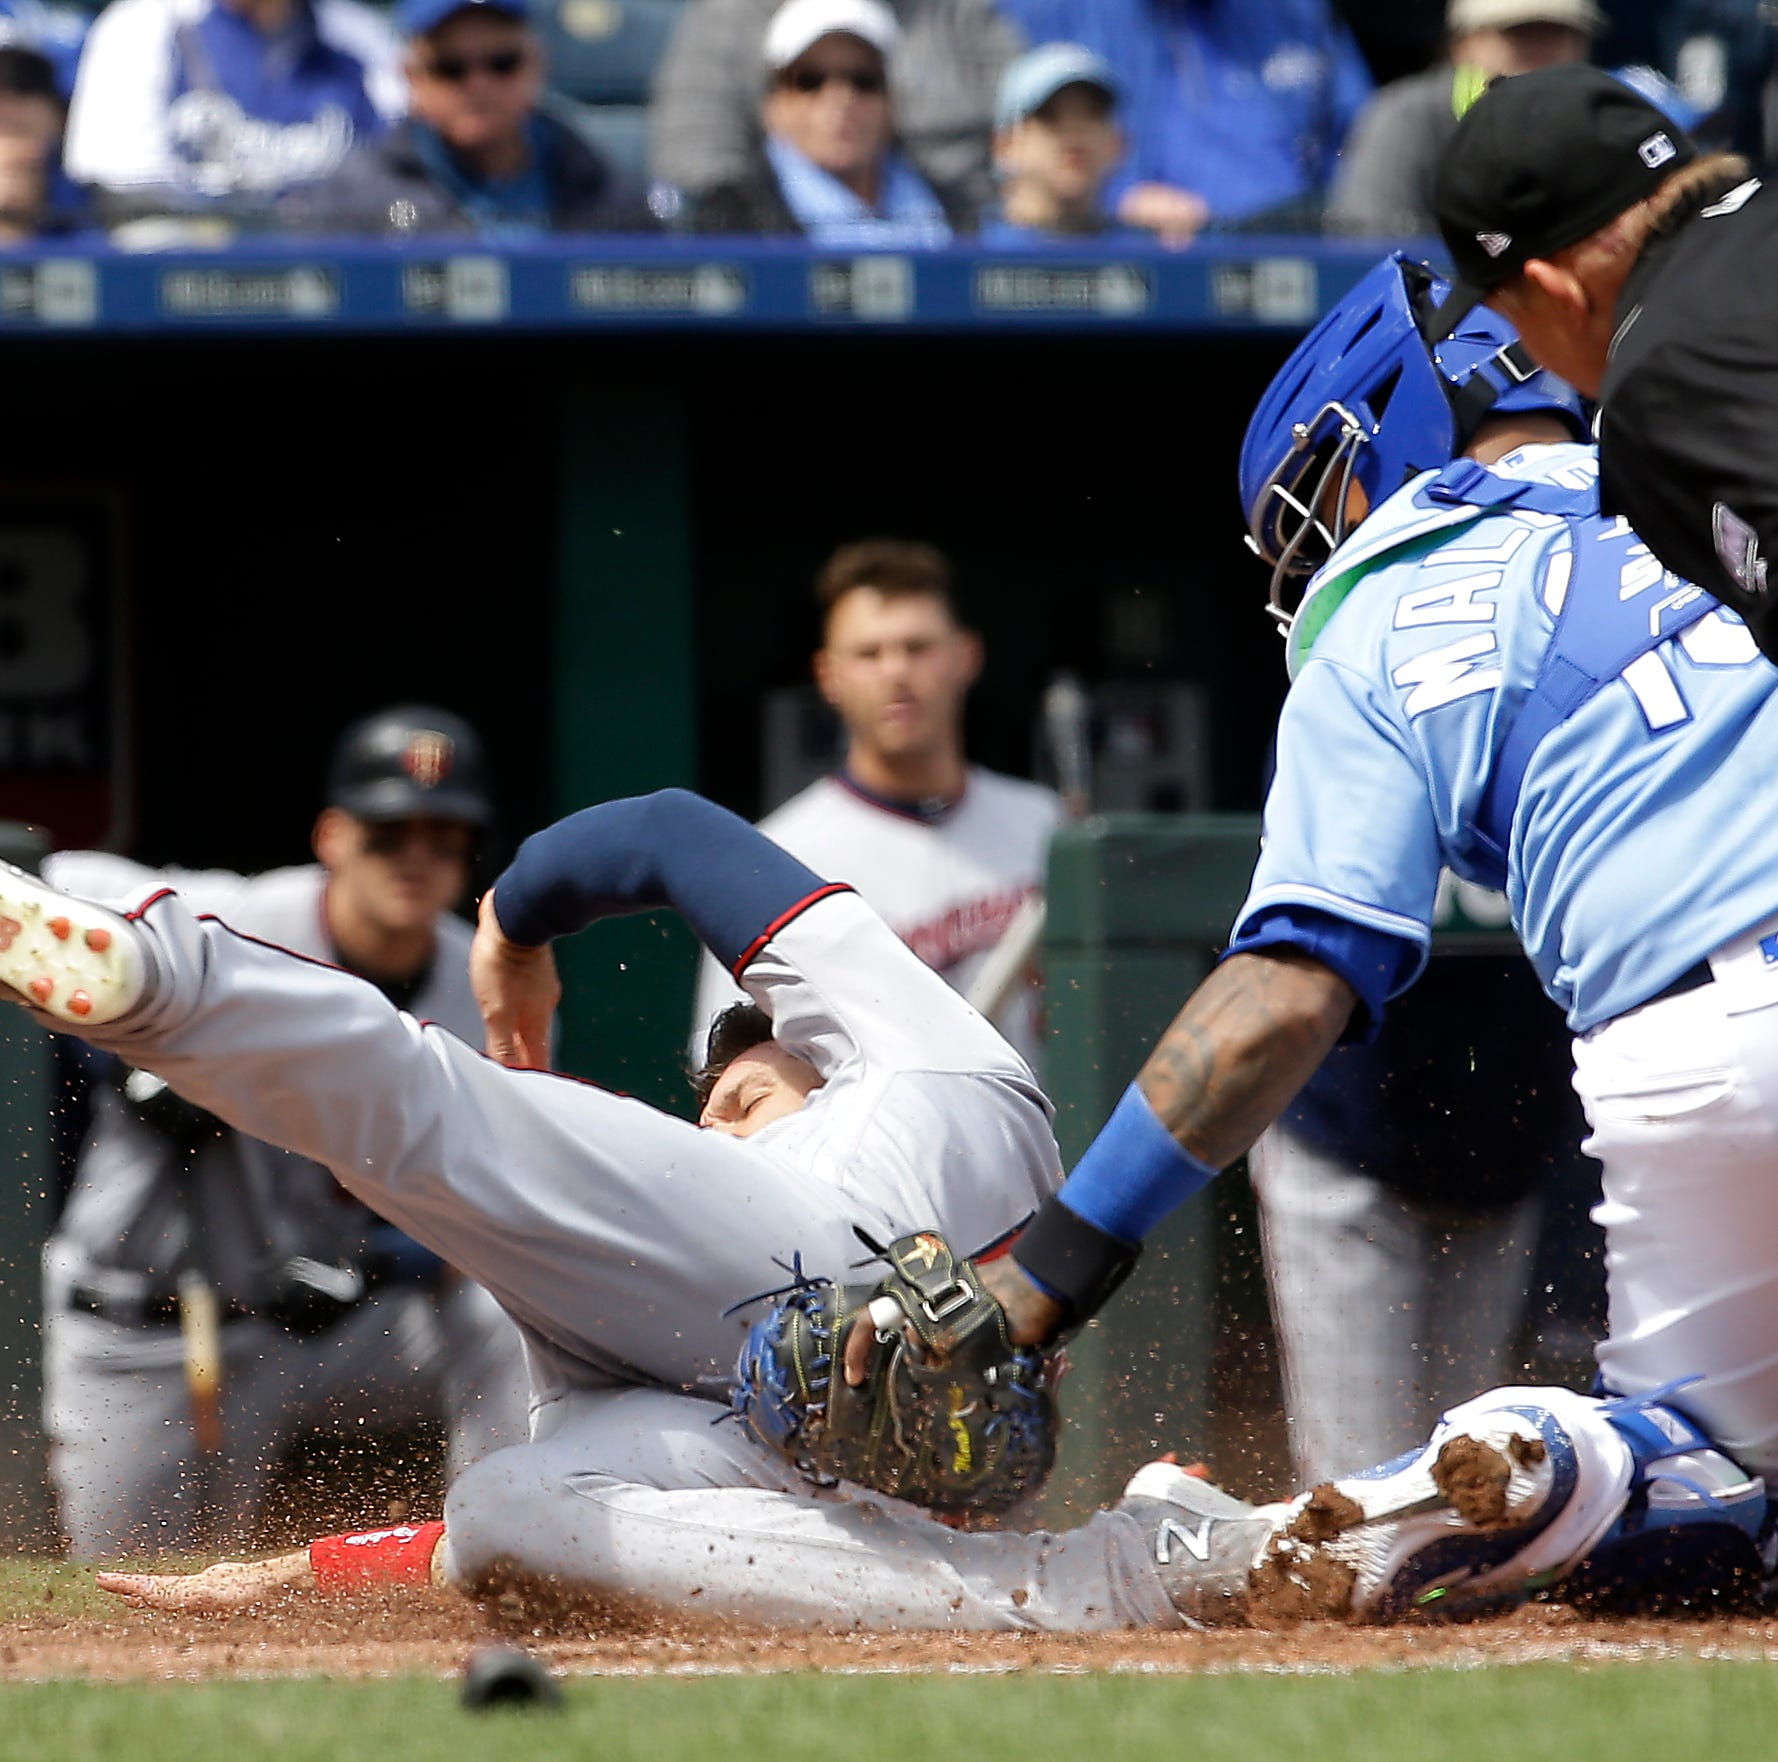 Twins rally past Royals for 2nd day in row, win 7-6